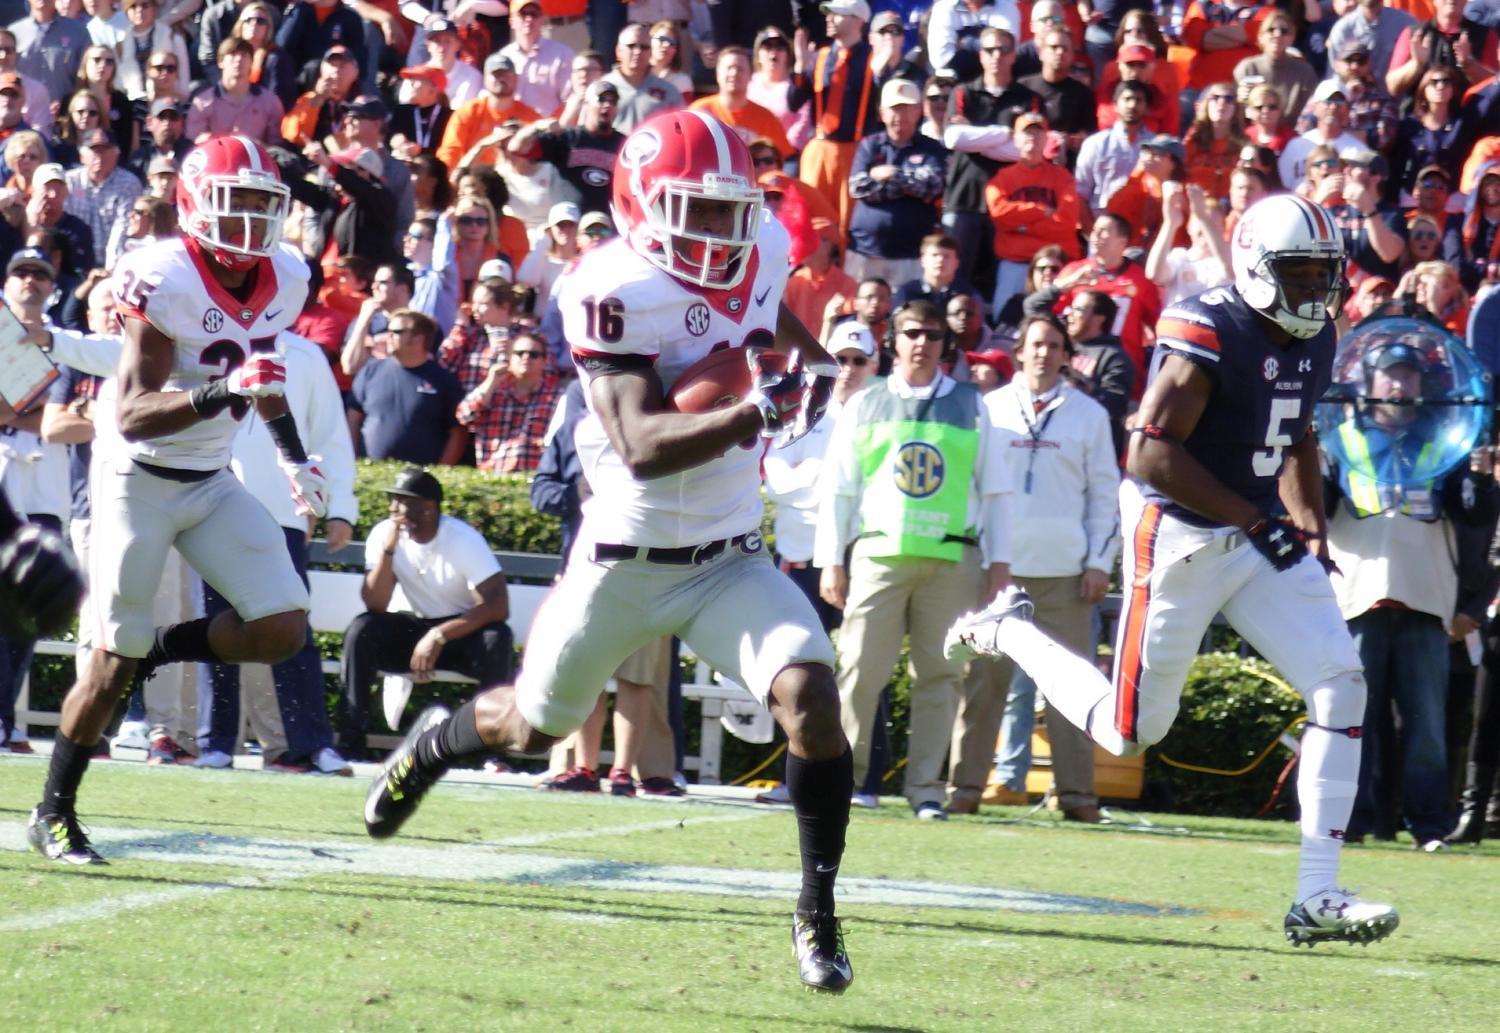 Isaiah Mckenzie eyes the endzone - punt return for TD - 2nd half - UGA vs. Auburn 14-Nov-2015 (Photo by Bulldawg Illustrated's Greg Poole)